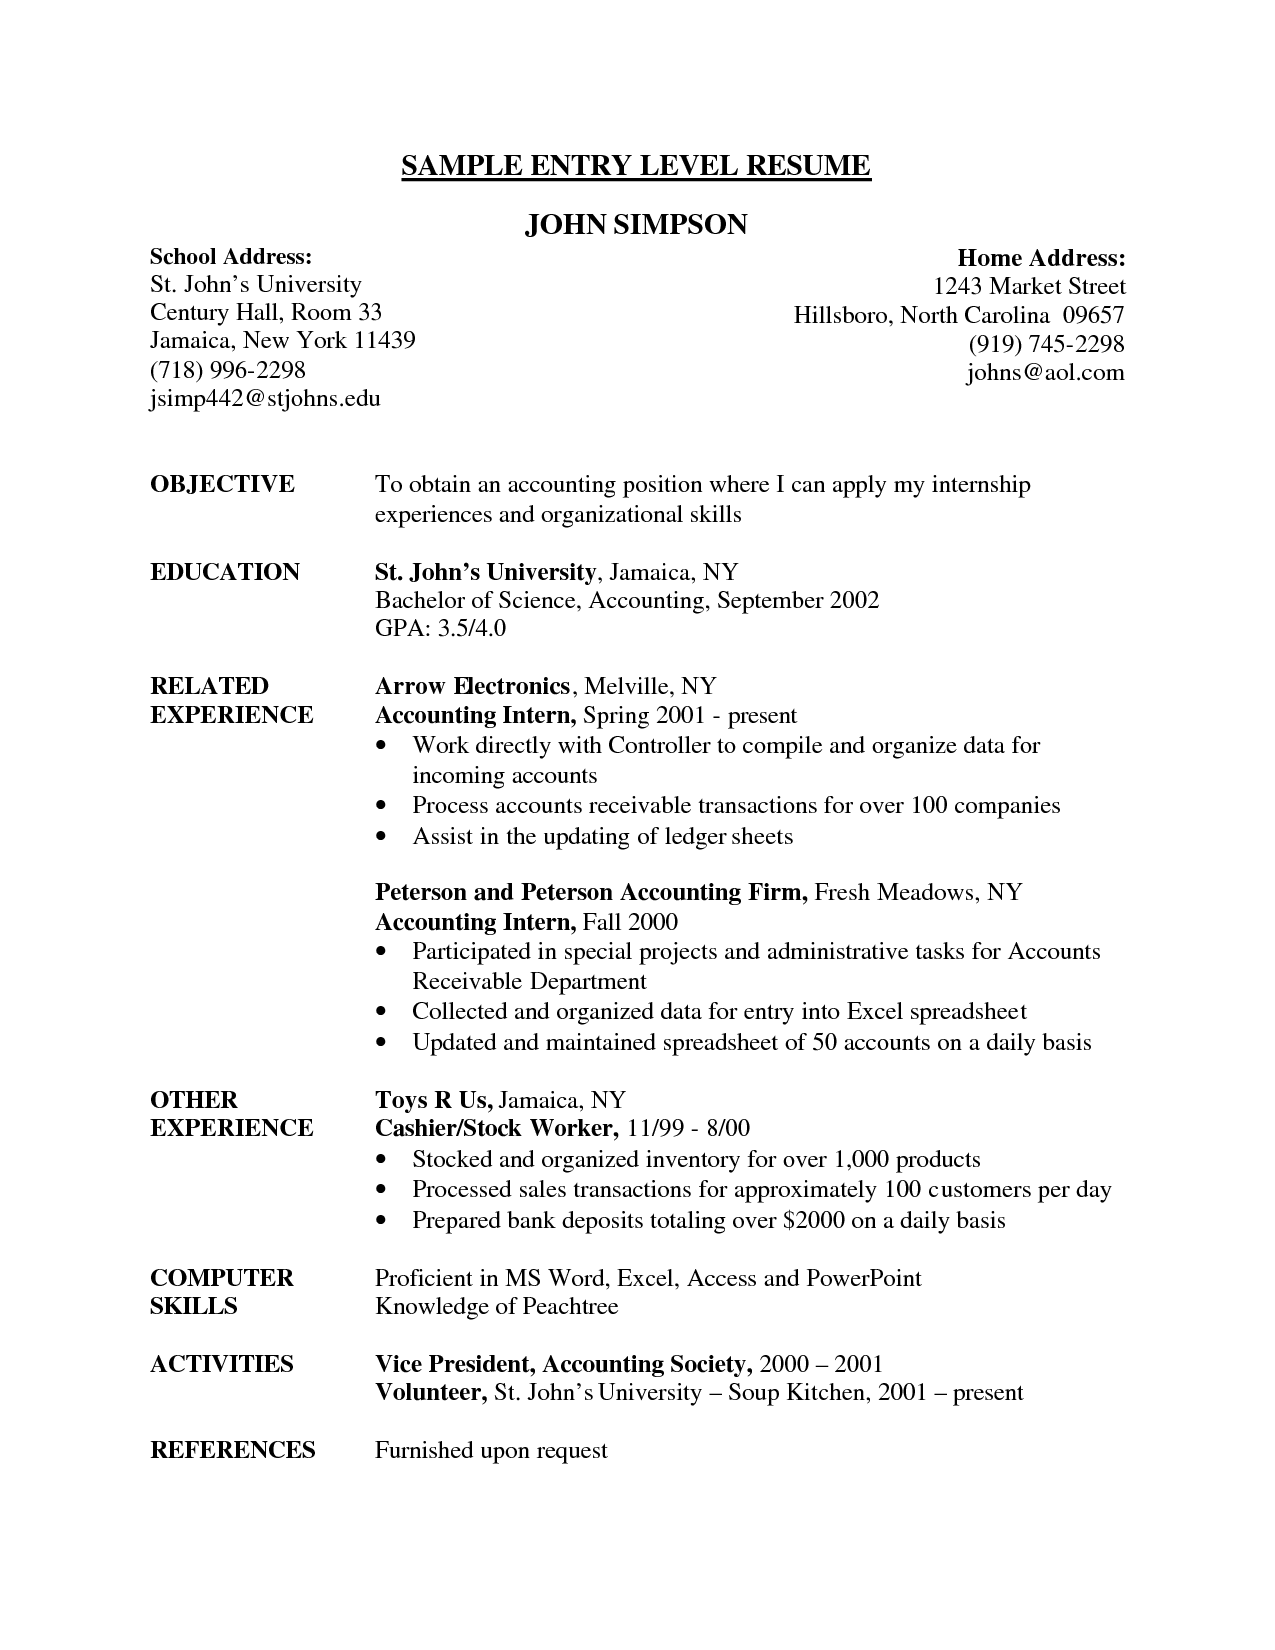 Work Resume Samples Example Of Resume Profile Entry Level  Httpwwwresumecareer